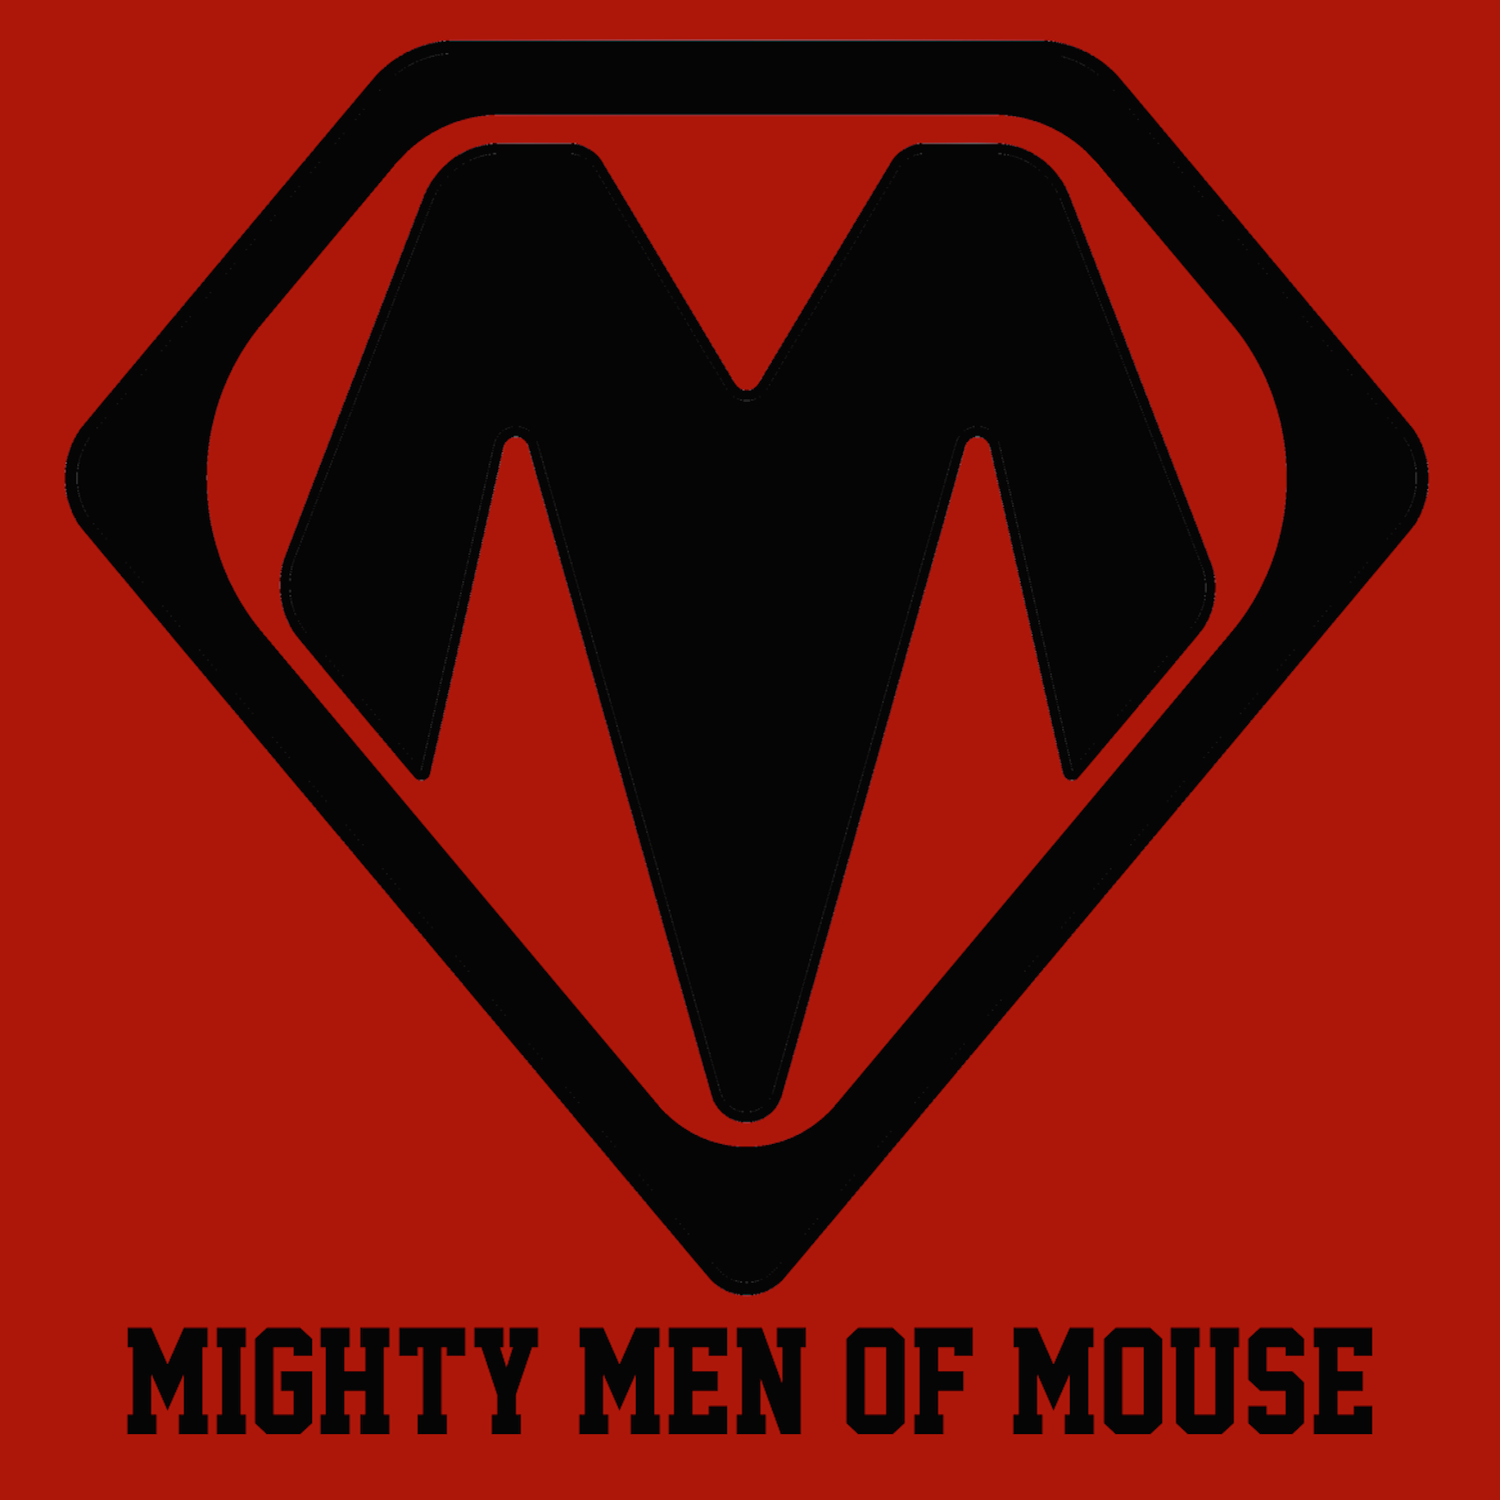 Mighty Men of Mouse: Episode 0392 -- 2019 Lookahead show art